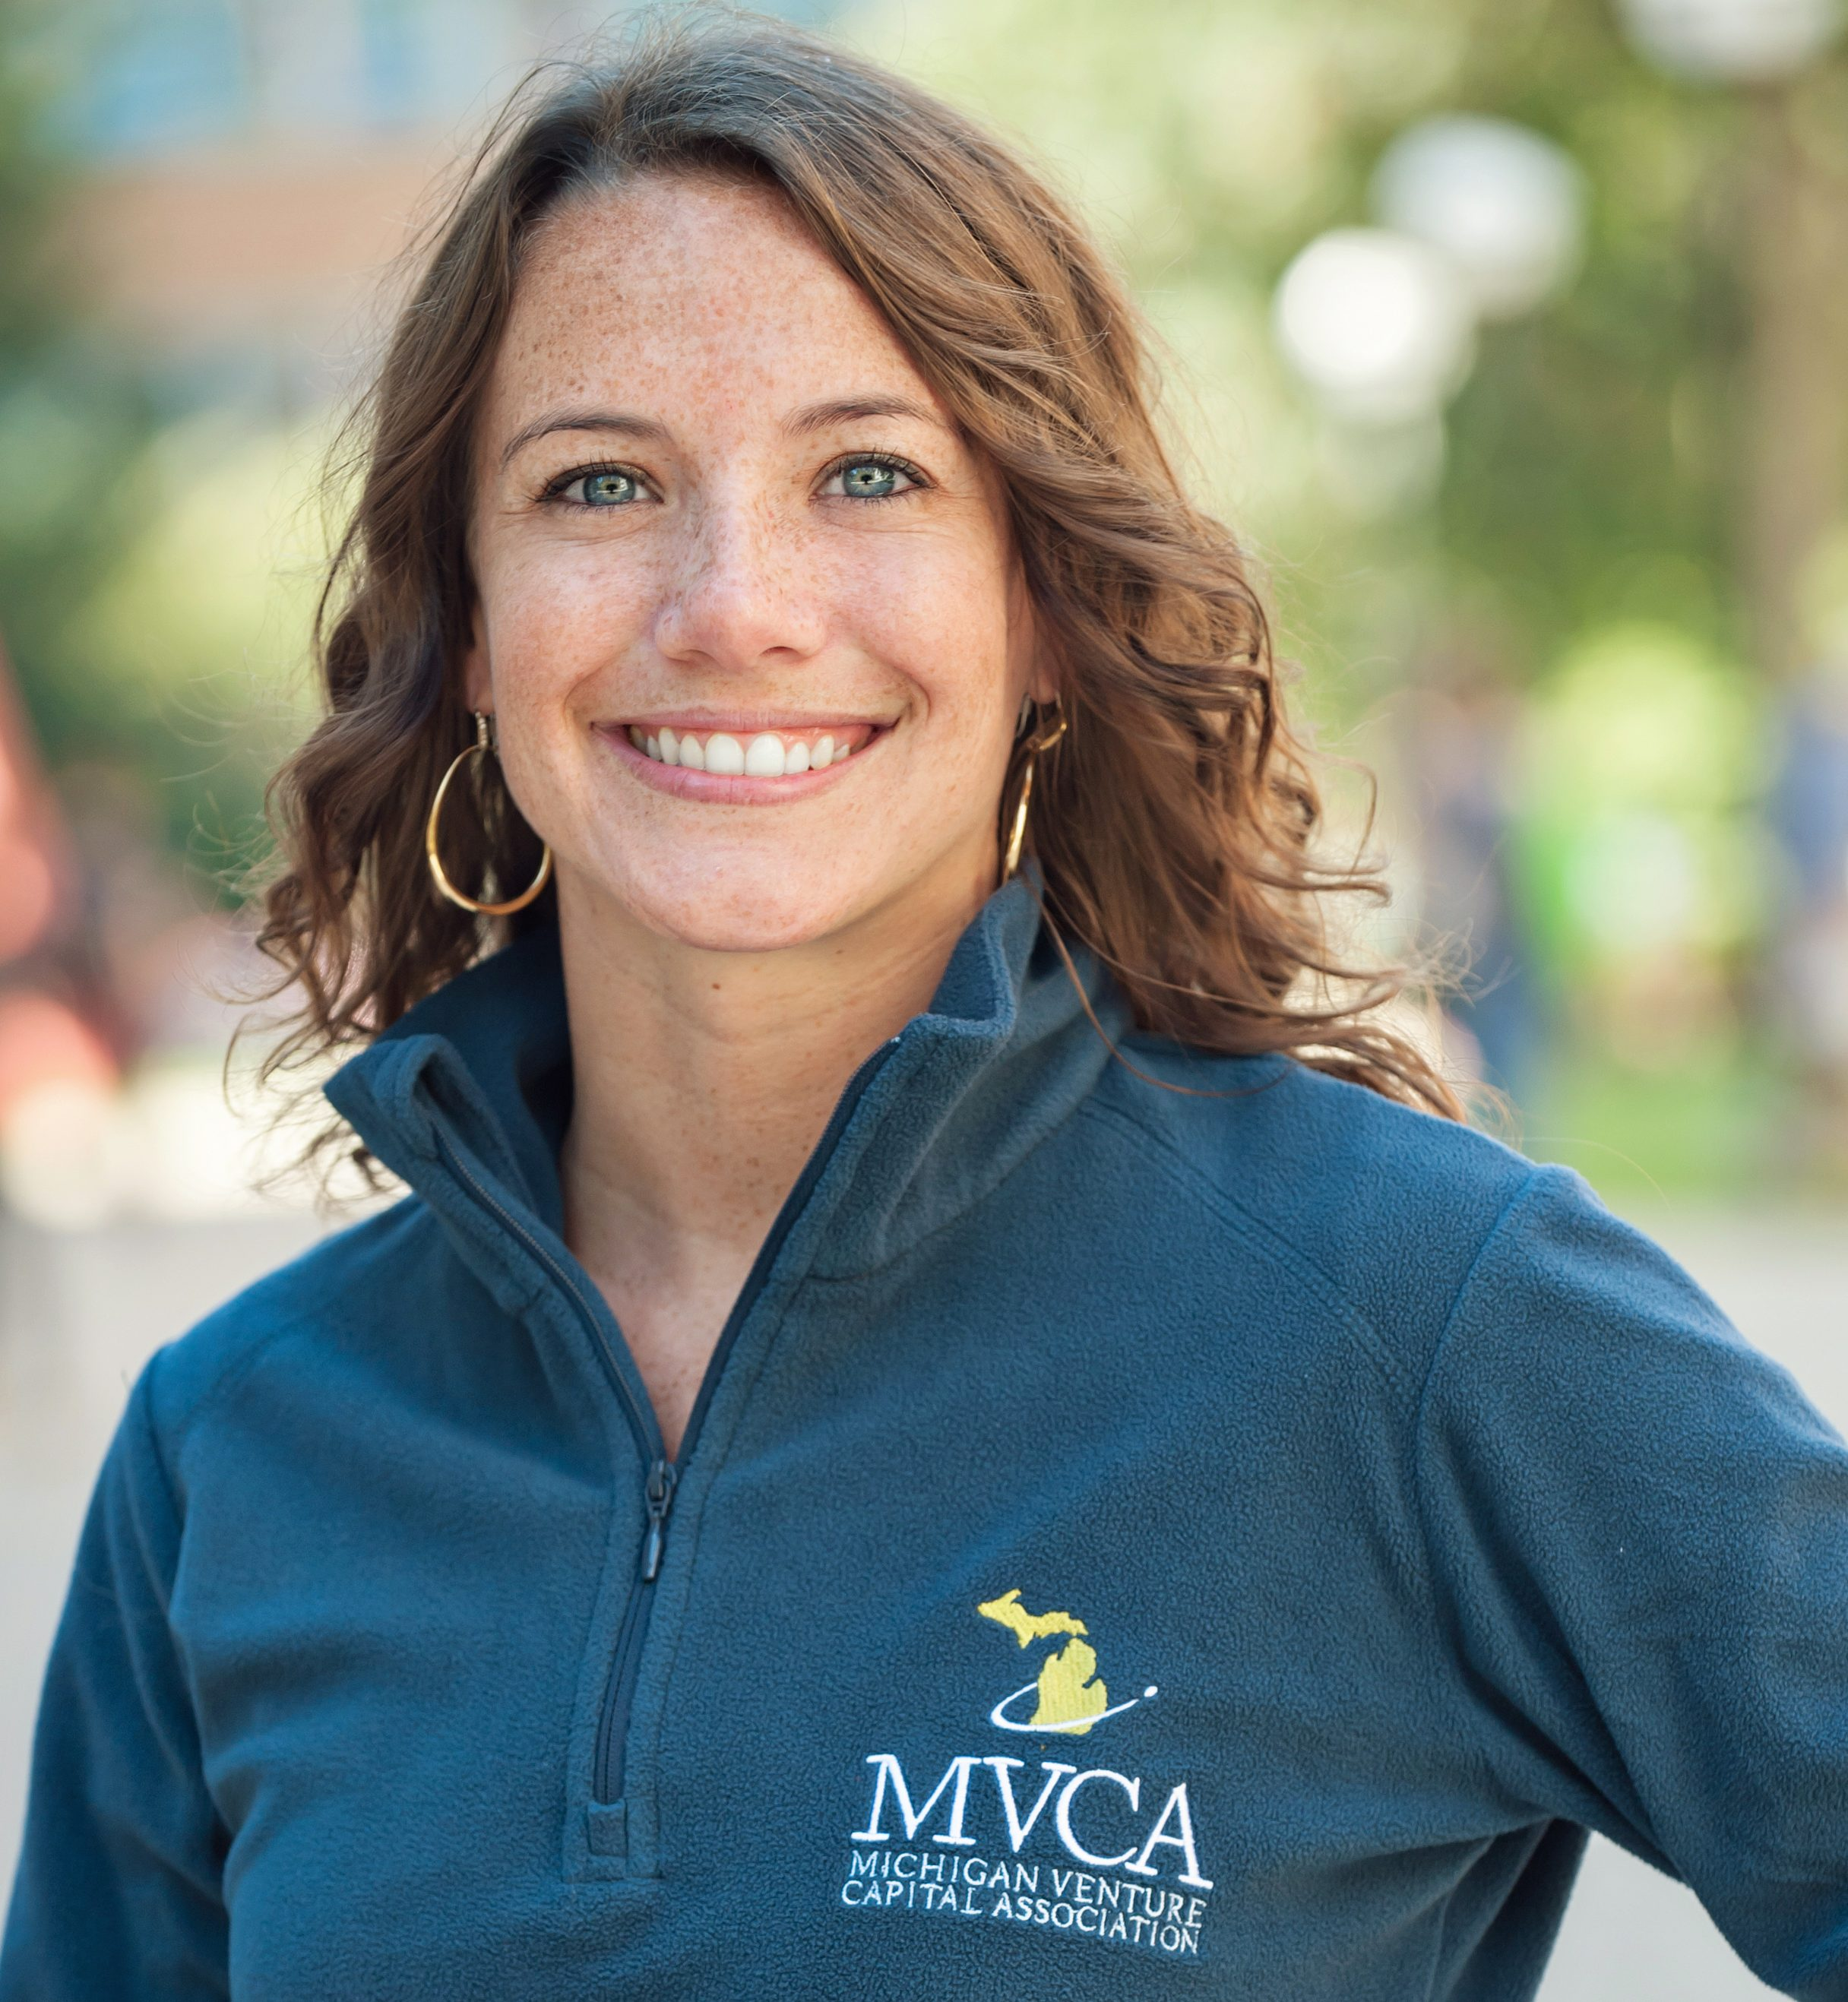 Molly Theis, MVCA Events & Program Manager